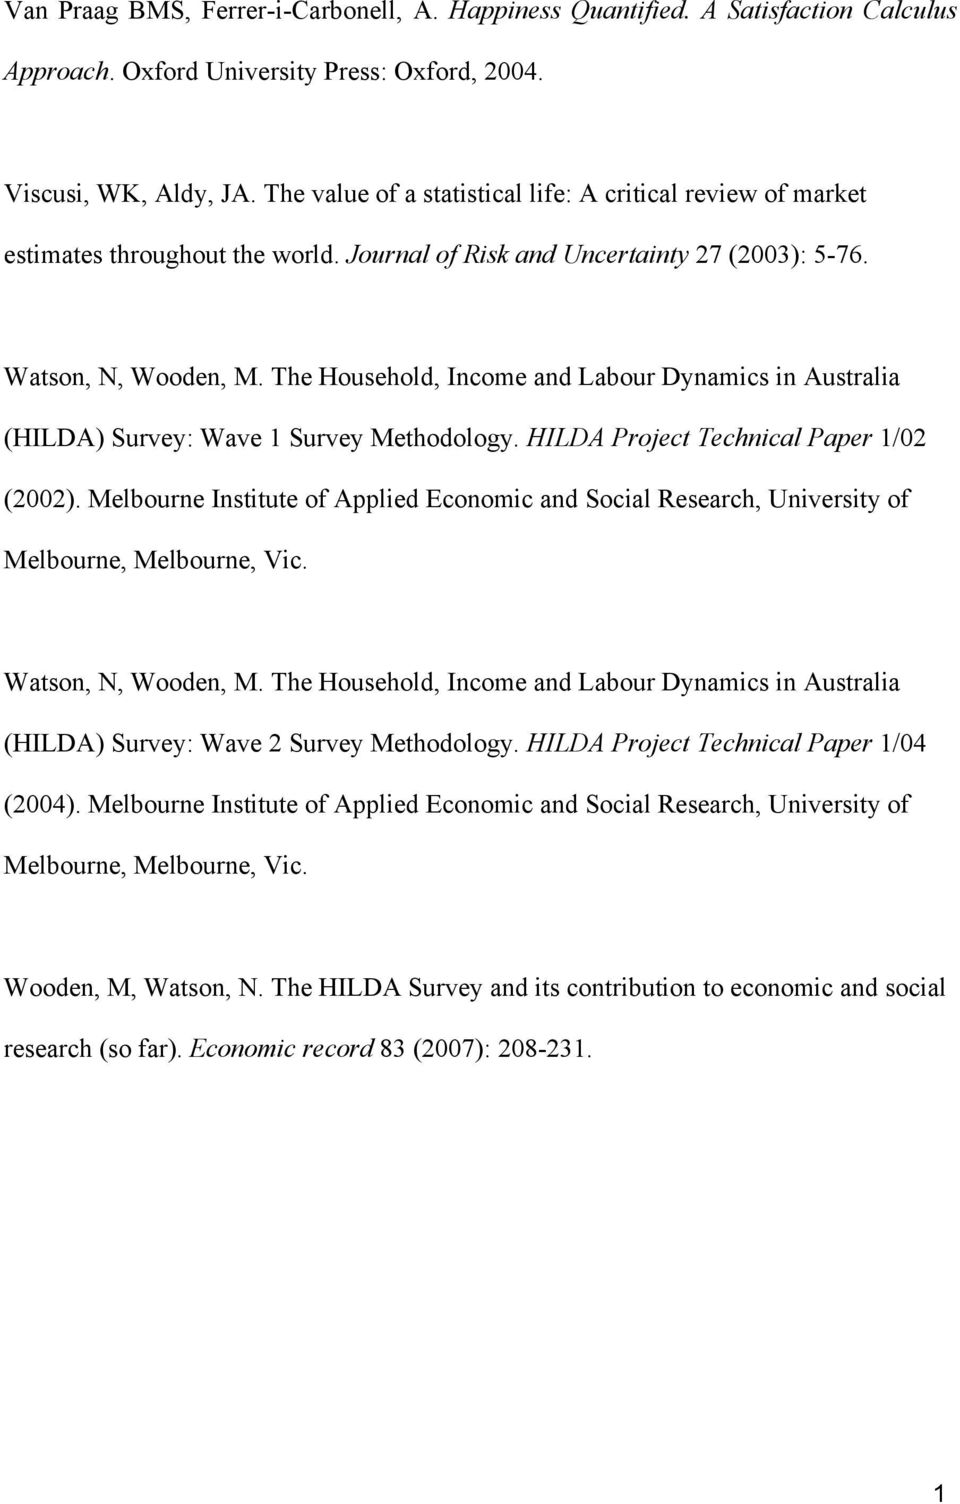 The Household, Income and Labour Dynamics in Australia (HILDA) Survey: Wave Survey Methodology. HILDA Project Technical Paper /02 (2002).